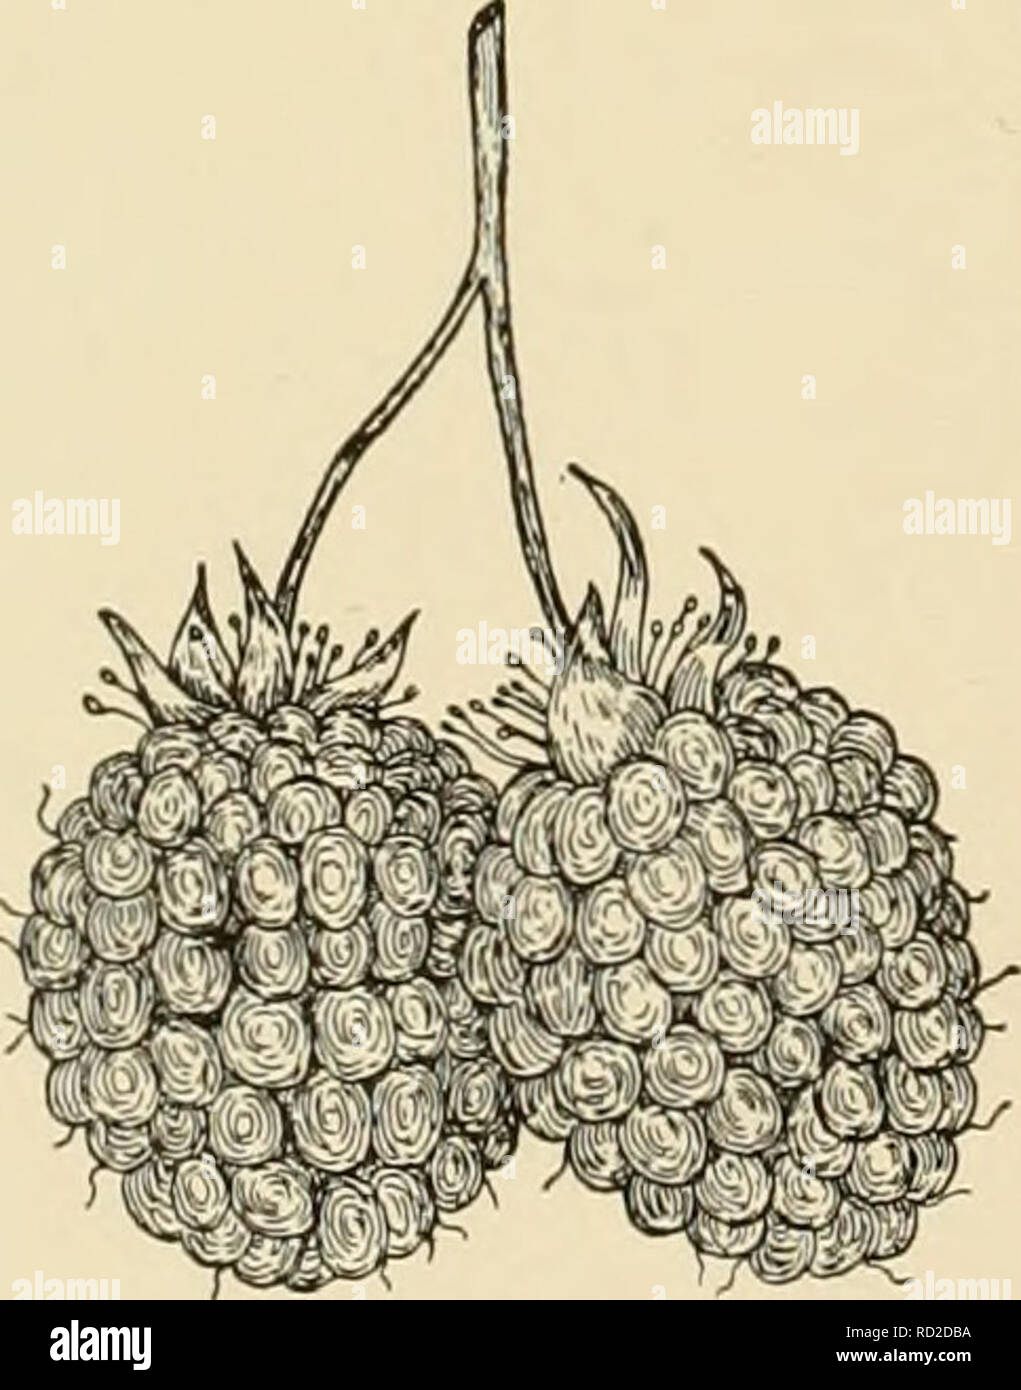 . Cyclopedia of hardy fruits. Fruit; Fruit-culture. 276 COLUMBIAN EMPIRE and Golden Cap, a seedling of an American black raspberry. It may be propagated either by suckers or tips. Plants vigorous, hardy, healthy, productive, with light-colored, upright canes having very few prickles. Leaves very dark green. Fruit of medium size, orange- pink deepening to salmon color; tiesh soft, juicy, sweet but sprightly; quality excellent. COLUMBIAN. R. strigosiis X R- occiden- talis. Columbian is the most prized of the purple raspberries. It takes leading place by virtue of the large size, firm fJesh, hand - Stock Image